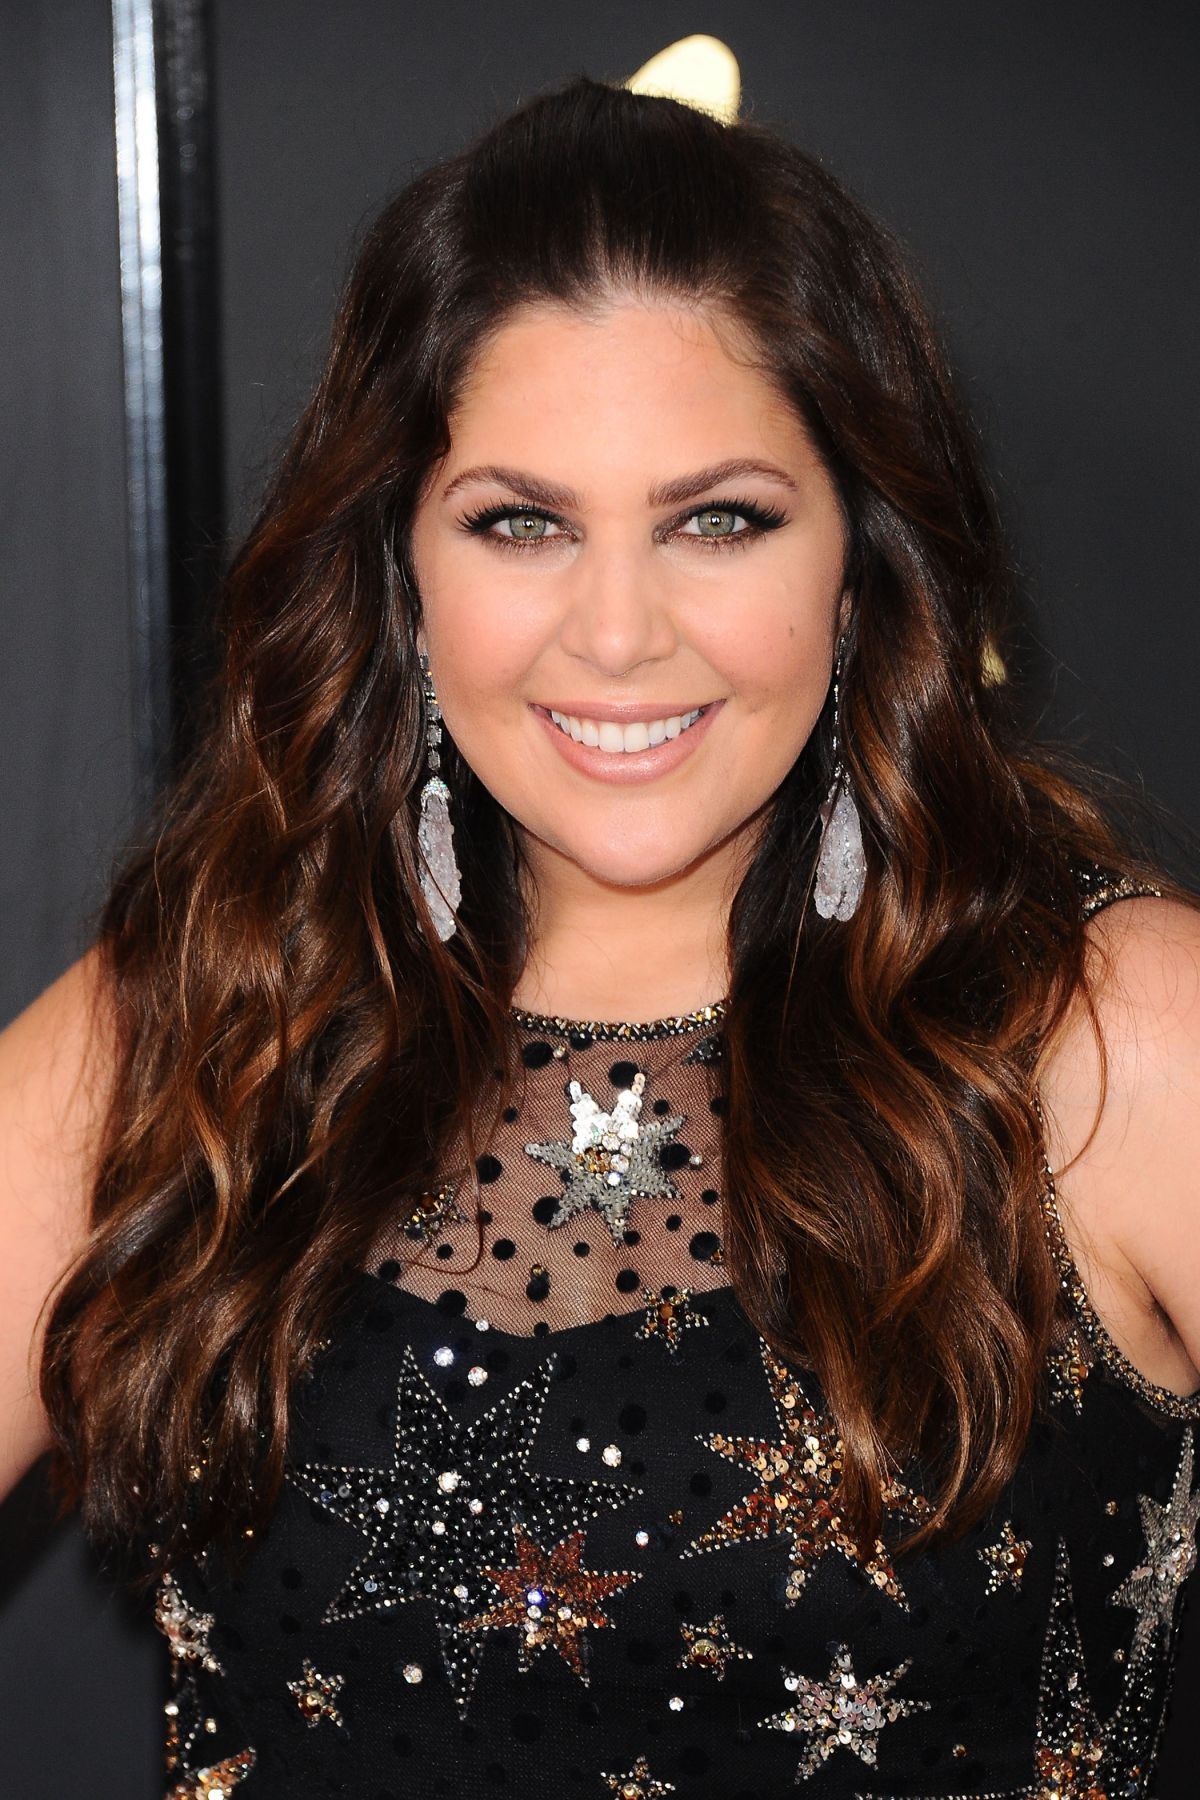 HILLARY SCOTT at 59th Annual Grammy Awards in Los Angeles 02/12/2017